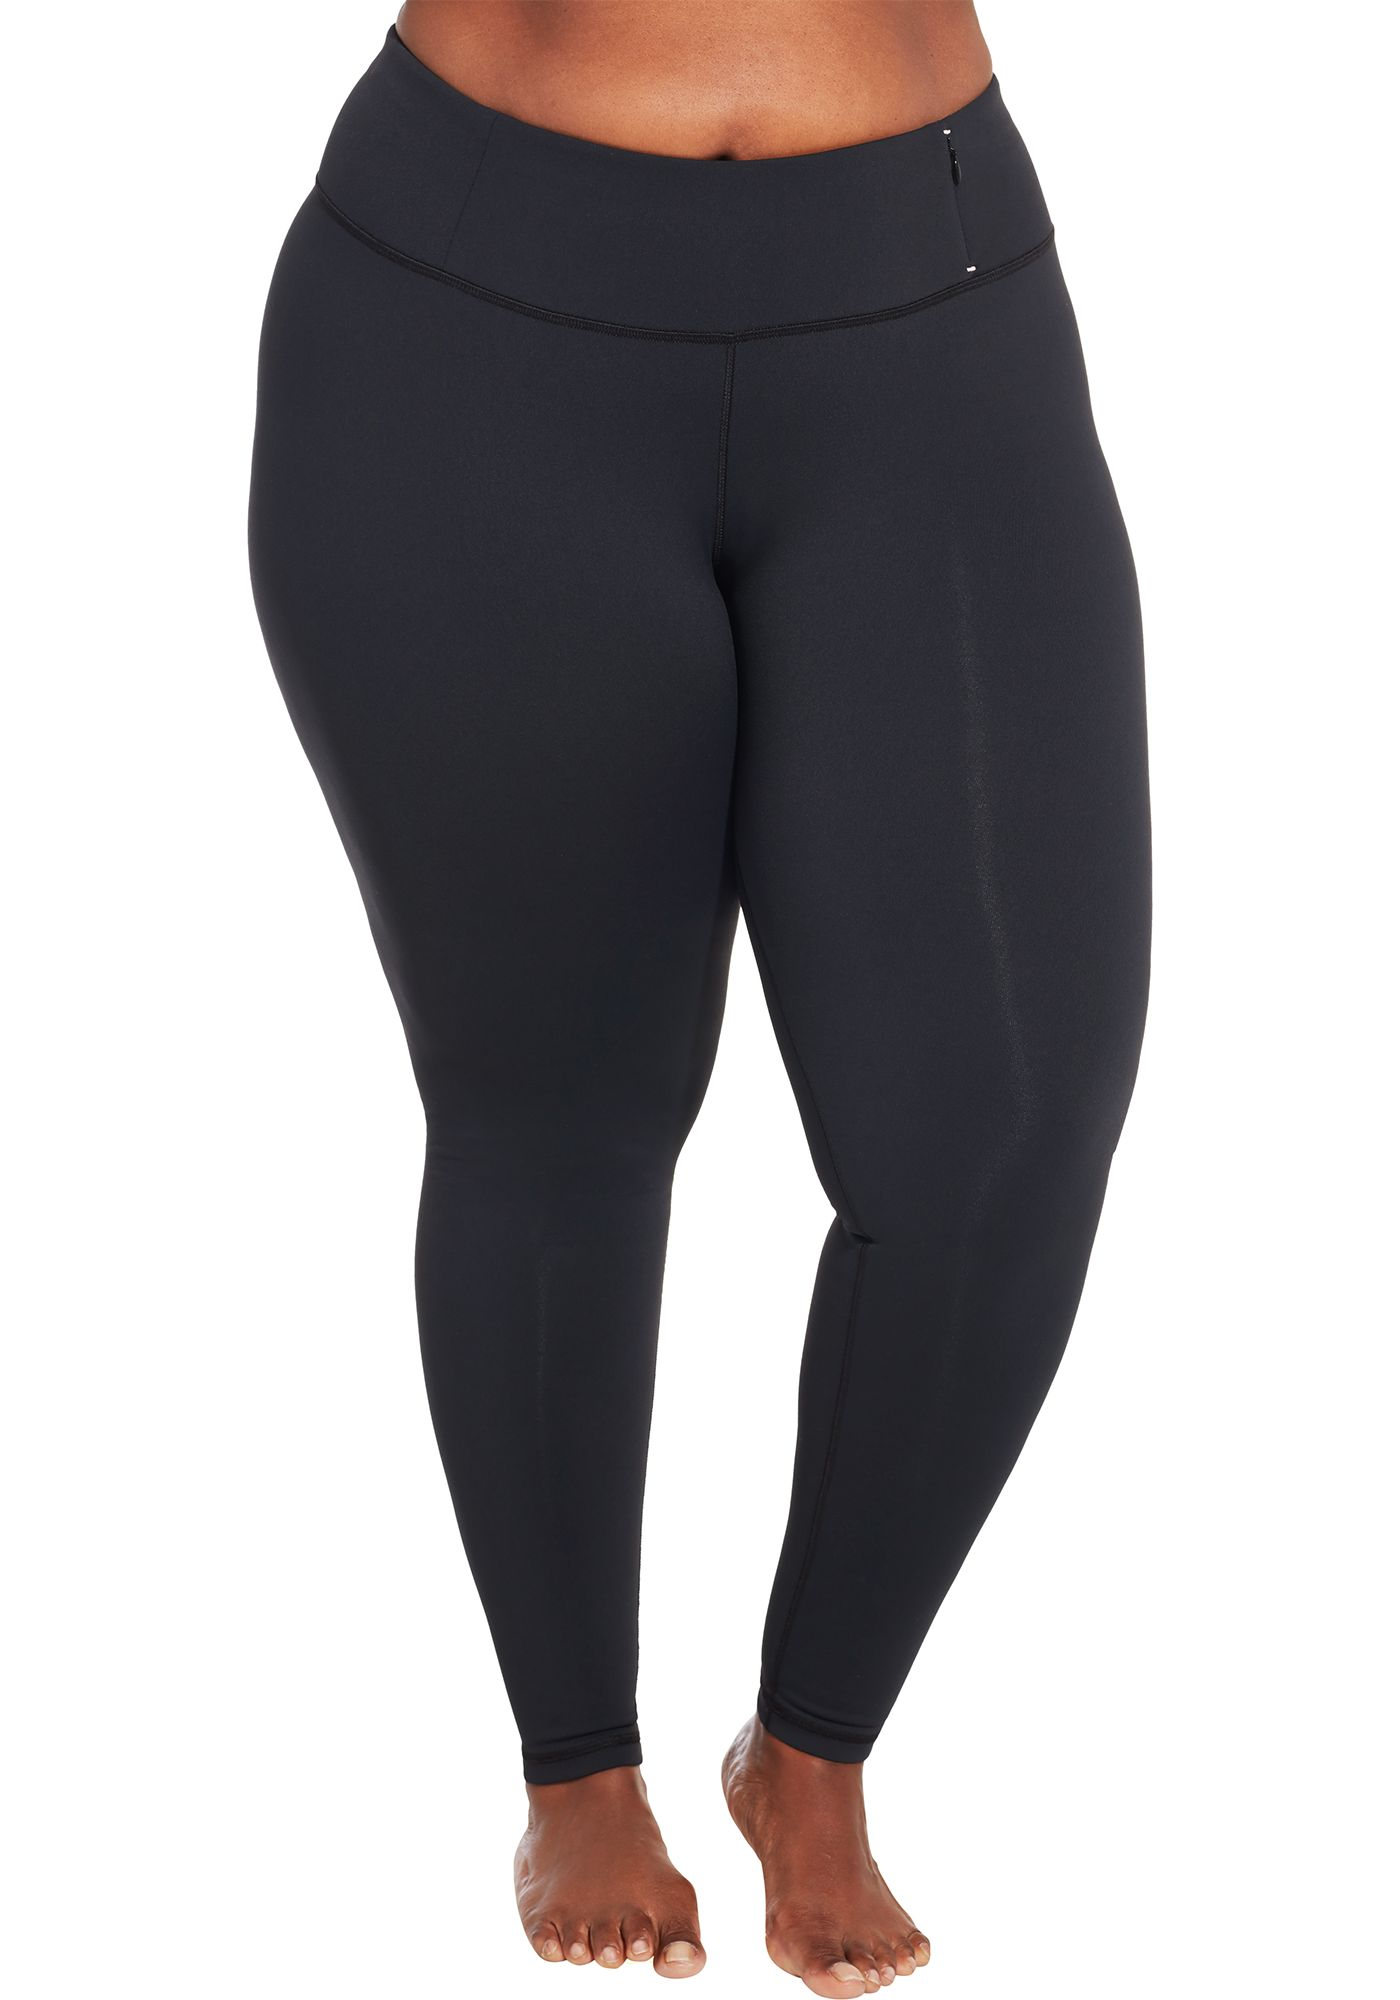 CALIA by Carrie Underwood Women's Plus Size Essential Mid-Rise Leggings